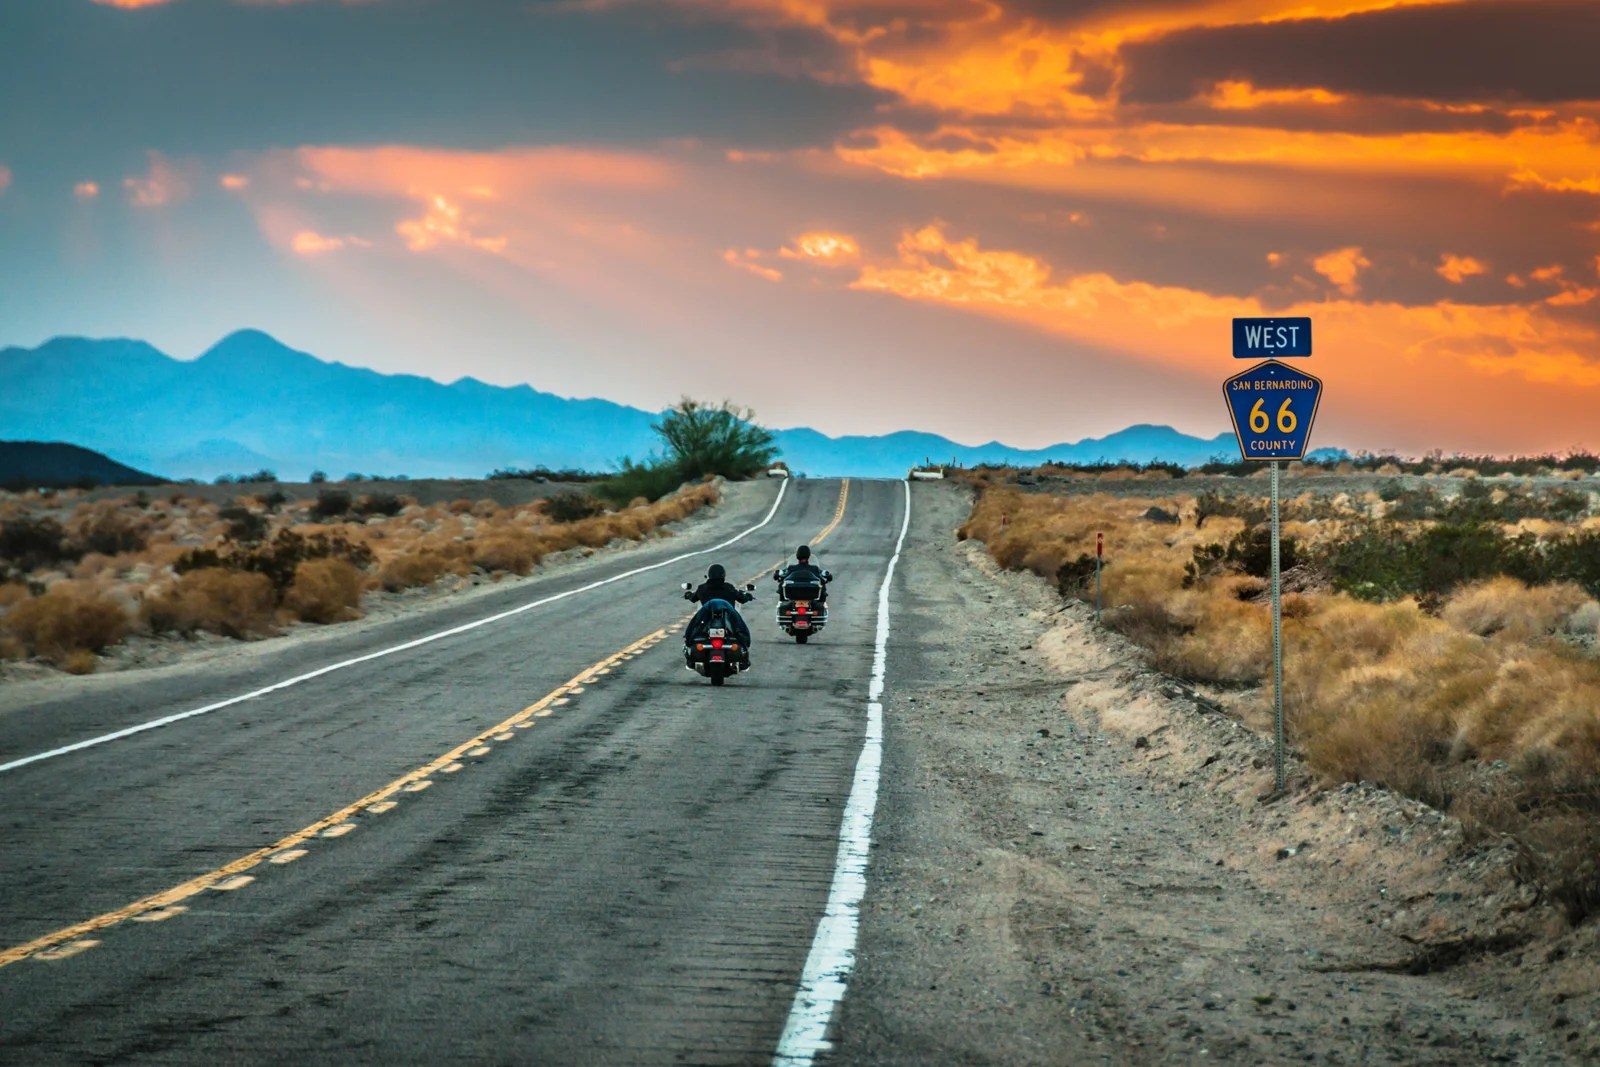 Route 66 road trip planner: The best stops along the way